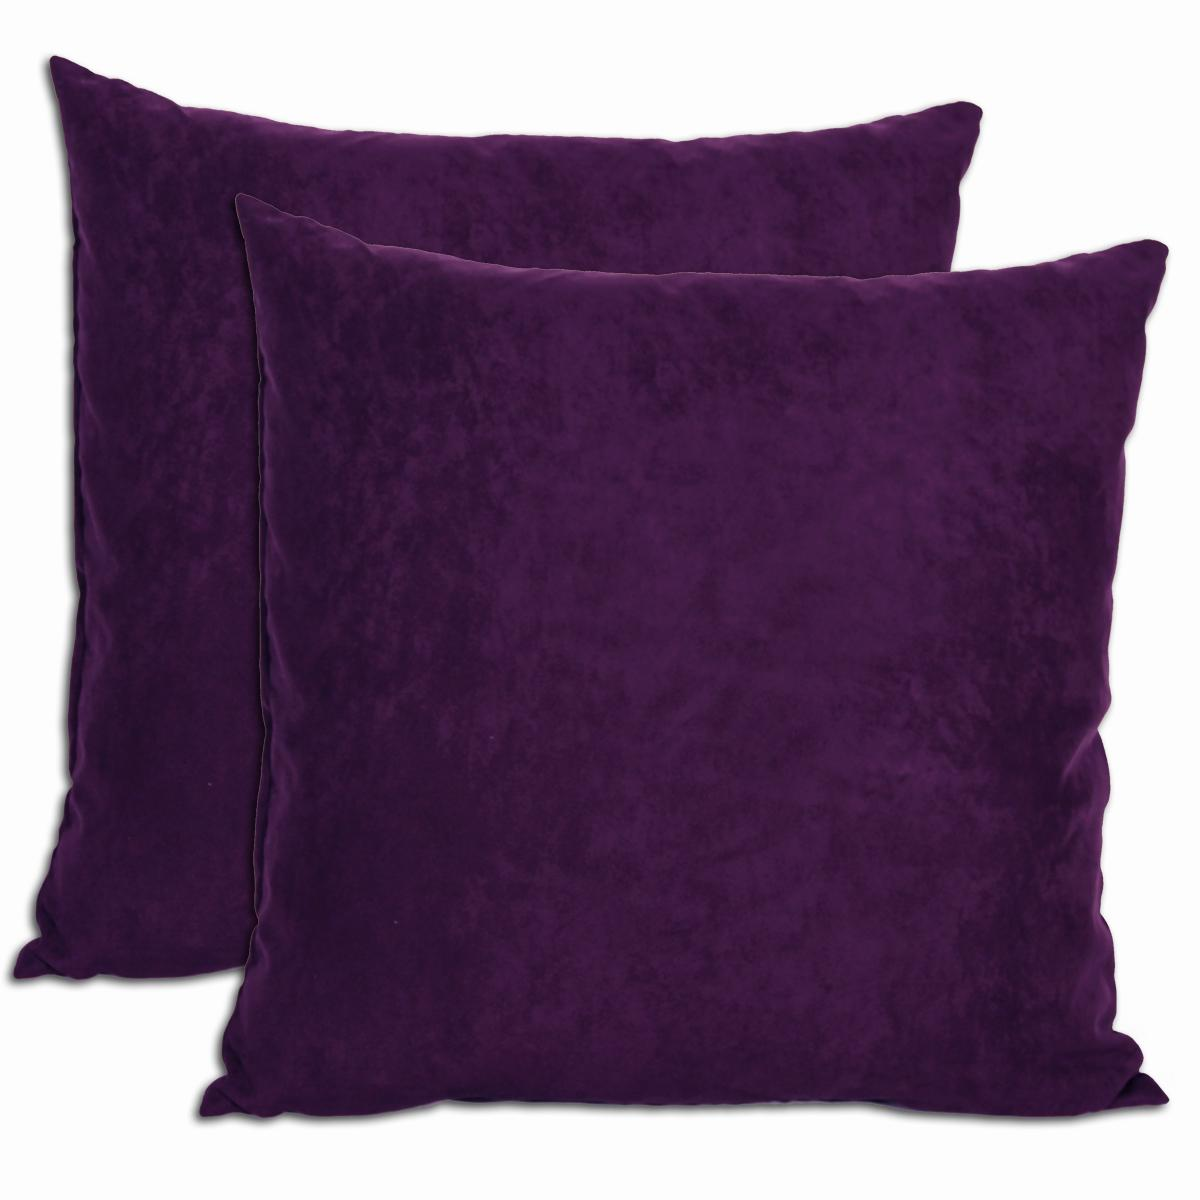 Purple Microsuede Feather and Down Filled Throw Pillows (Set of 2) - Free Shipping On Orders ...